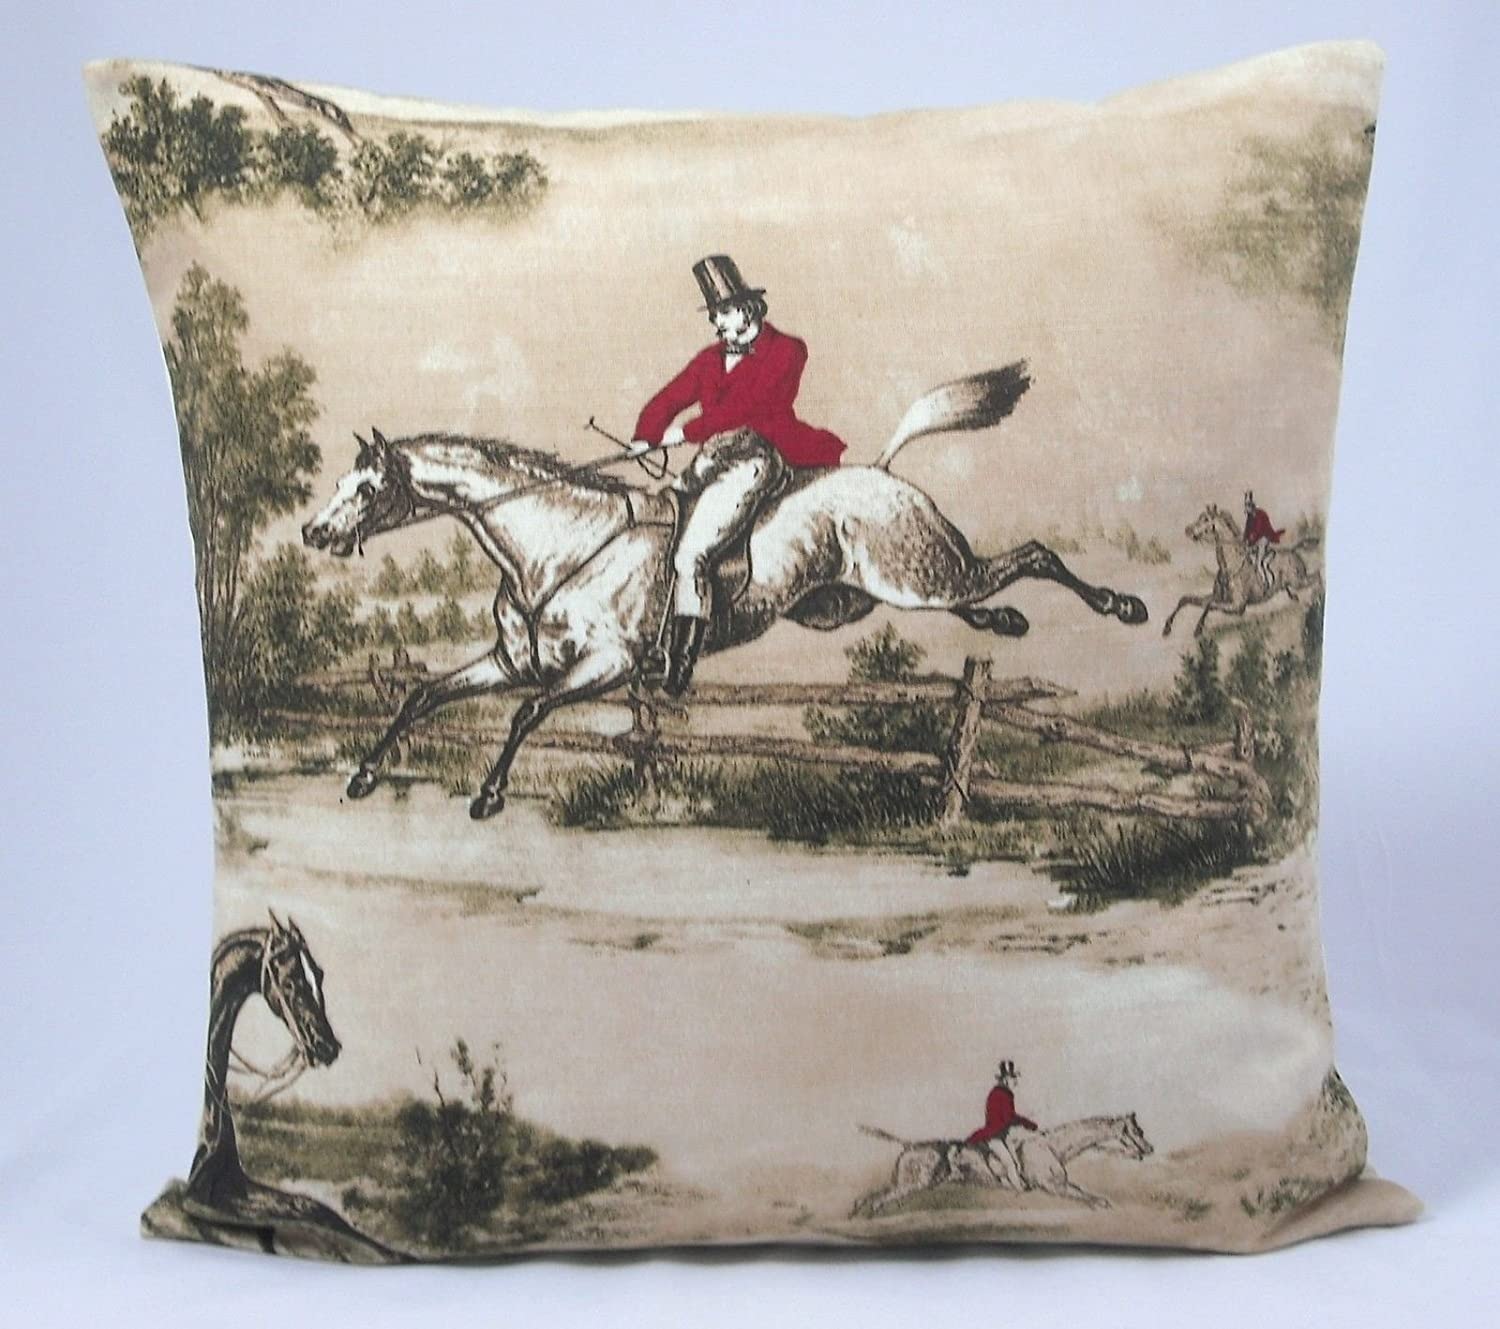 Hunting Scene Lampshades Ideal To Match Hunting Scene Cushions /& Covers